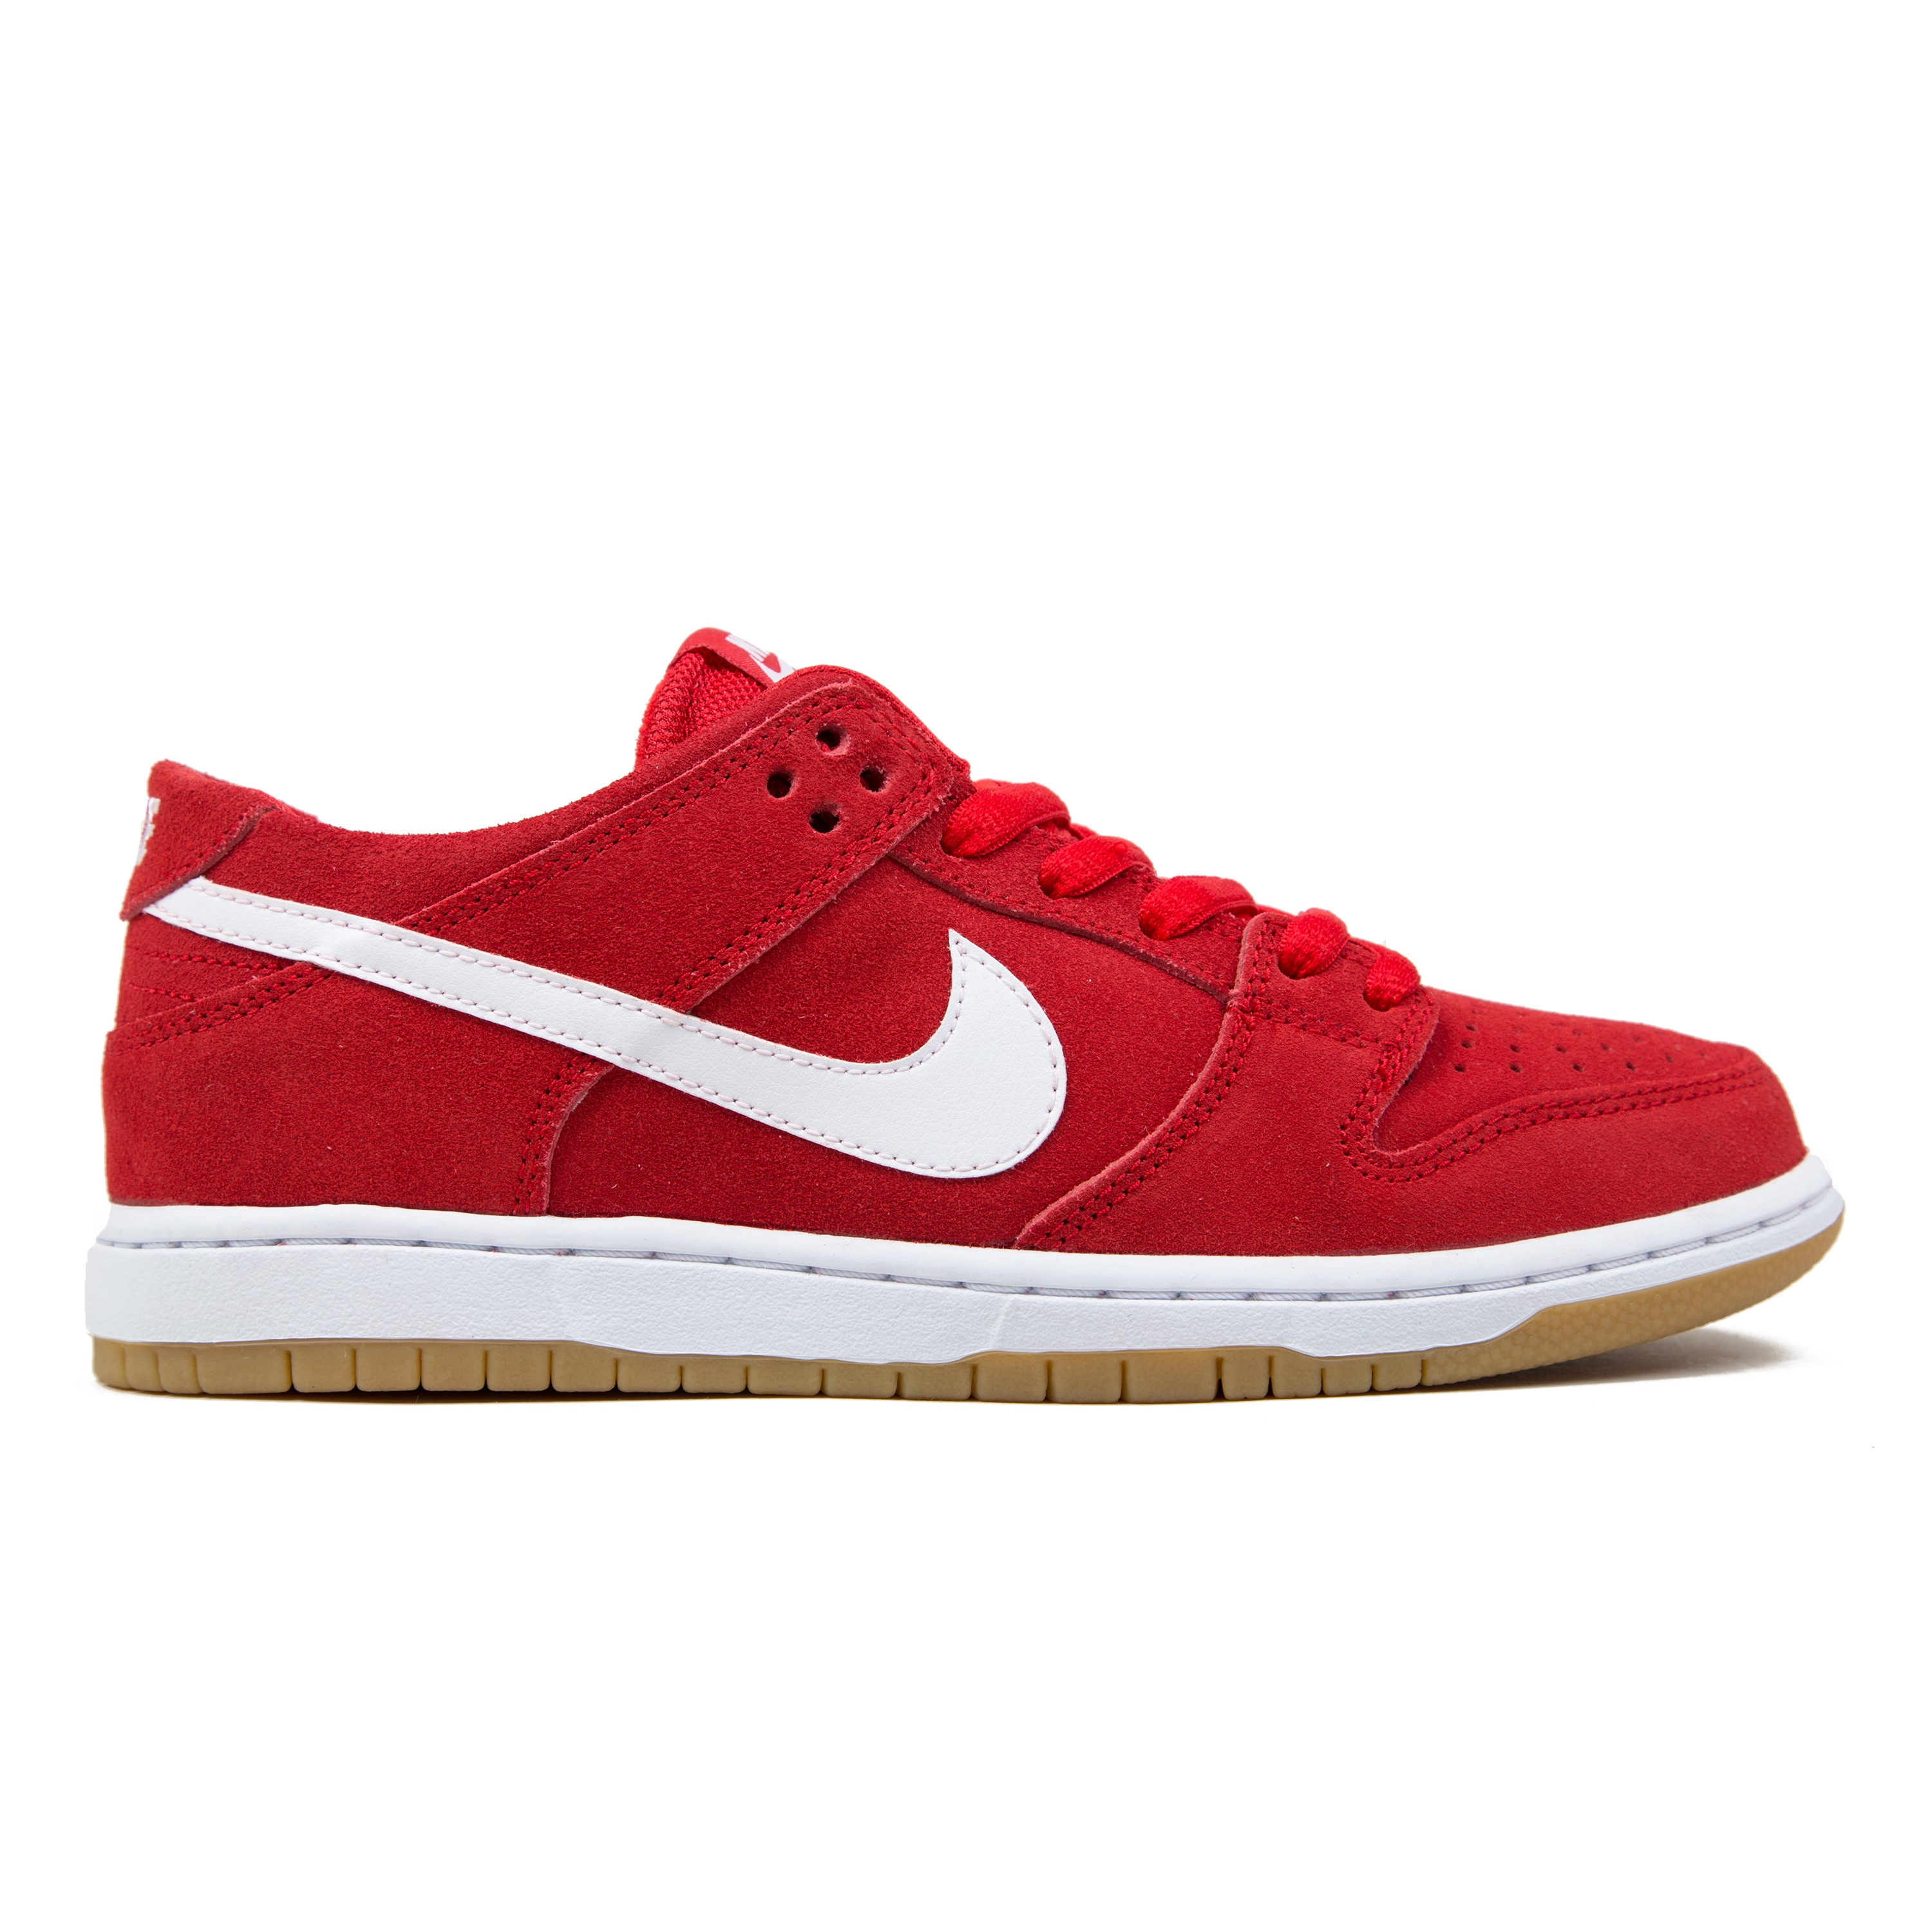 pretty nice 7fdaa c3e55 ... 304292-612 Nike Dunk Low Pro IW University Red on feet For full  information on delivery and customs click here The 2014 Valentines ...